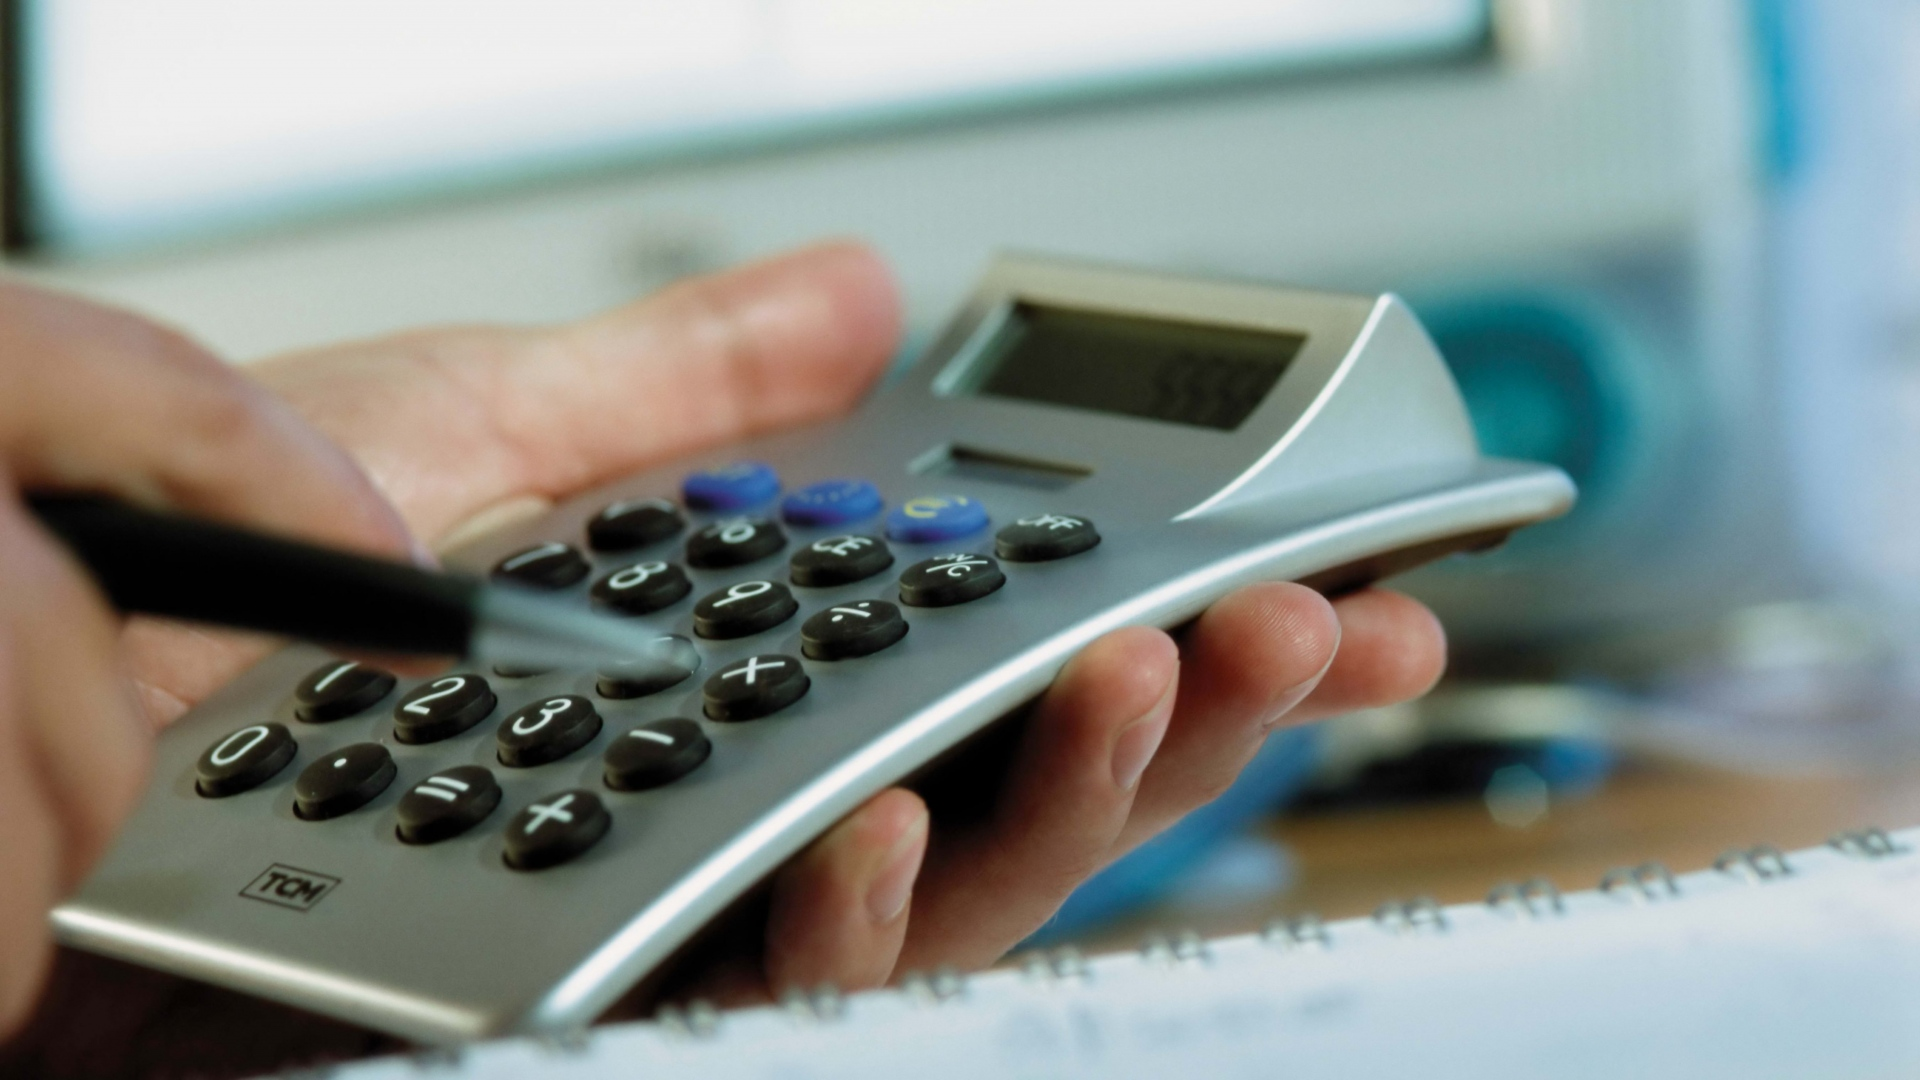 holding calculator photography wallpaper 61253